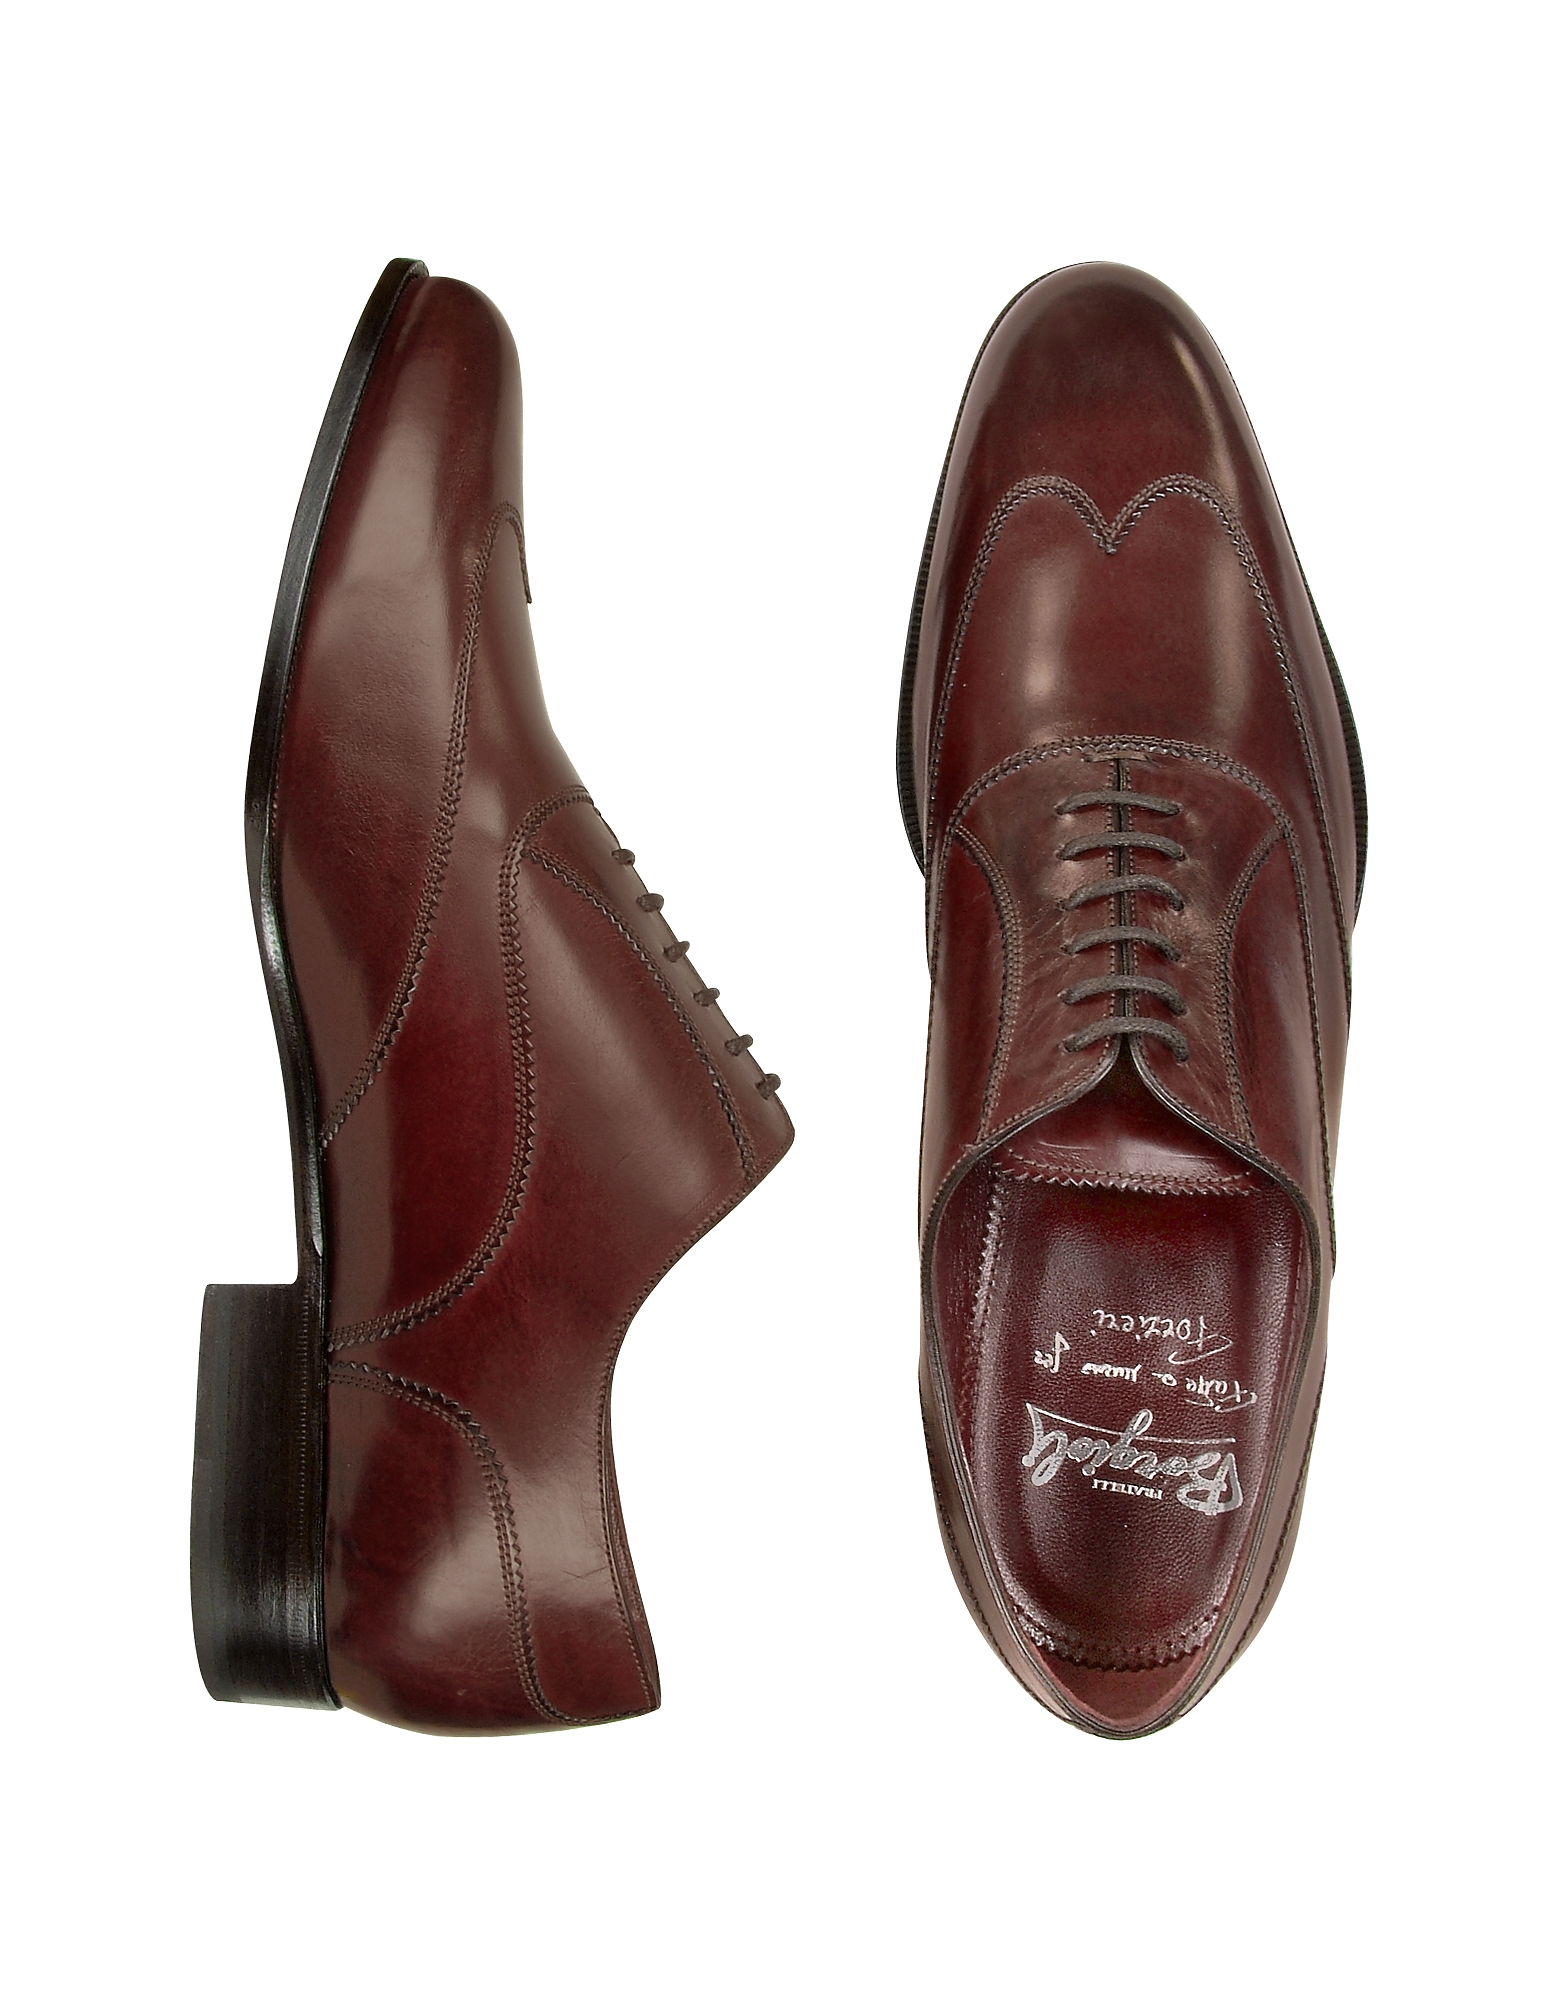 Fratelli Borgioli Shoes, Handmade Burgundy Italian Leather Wingtip Oxford Shoes